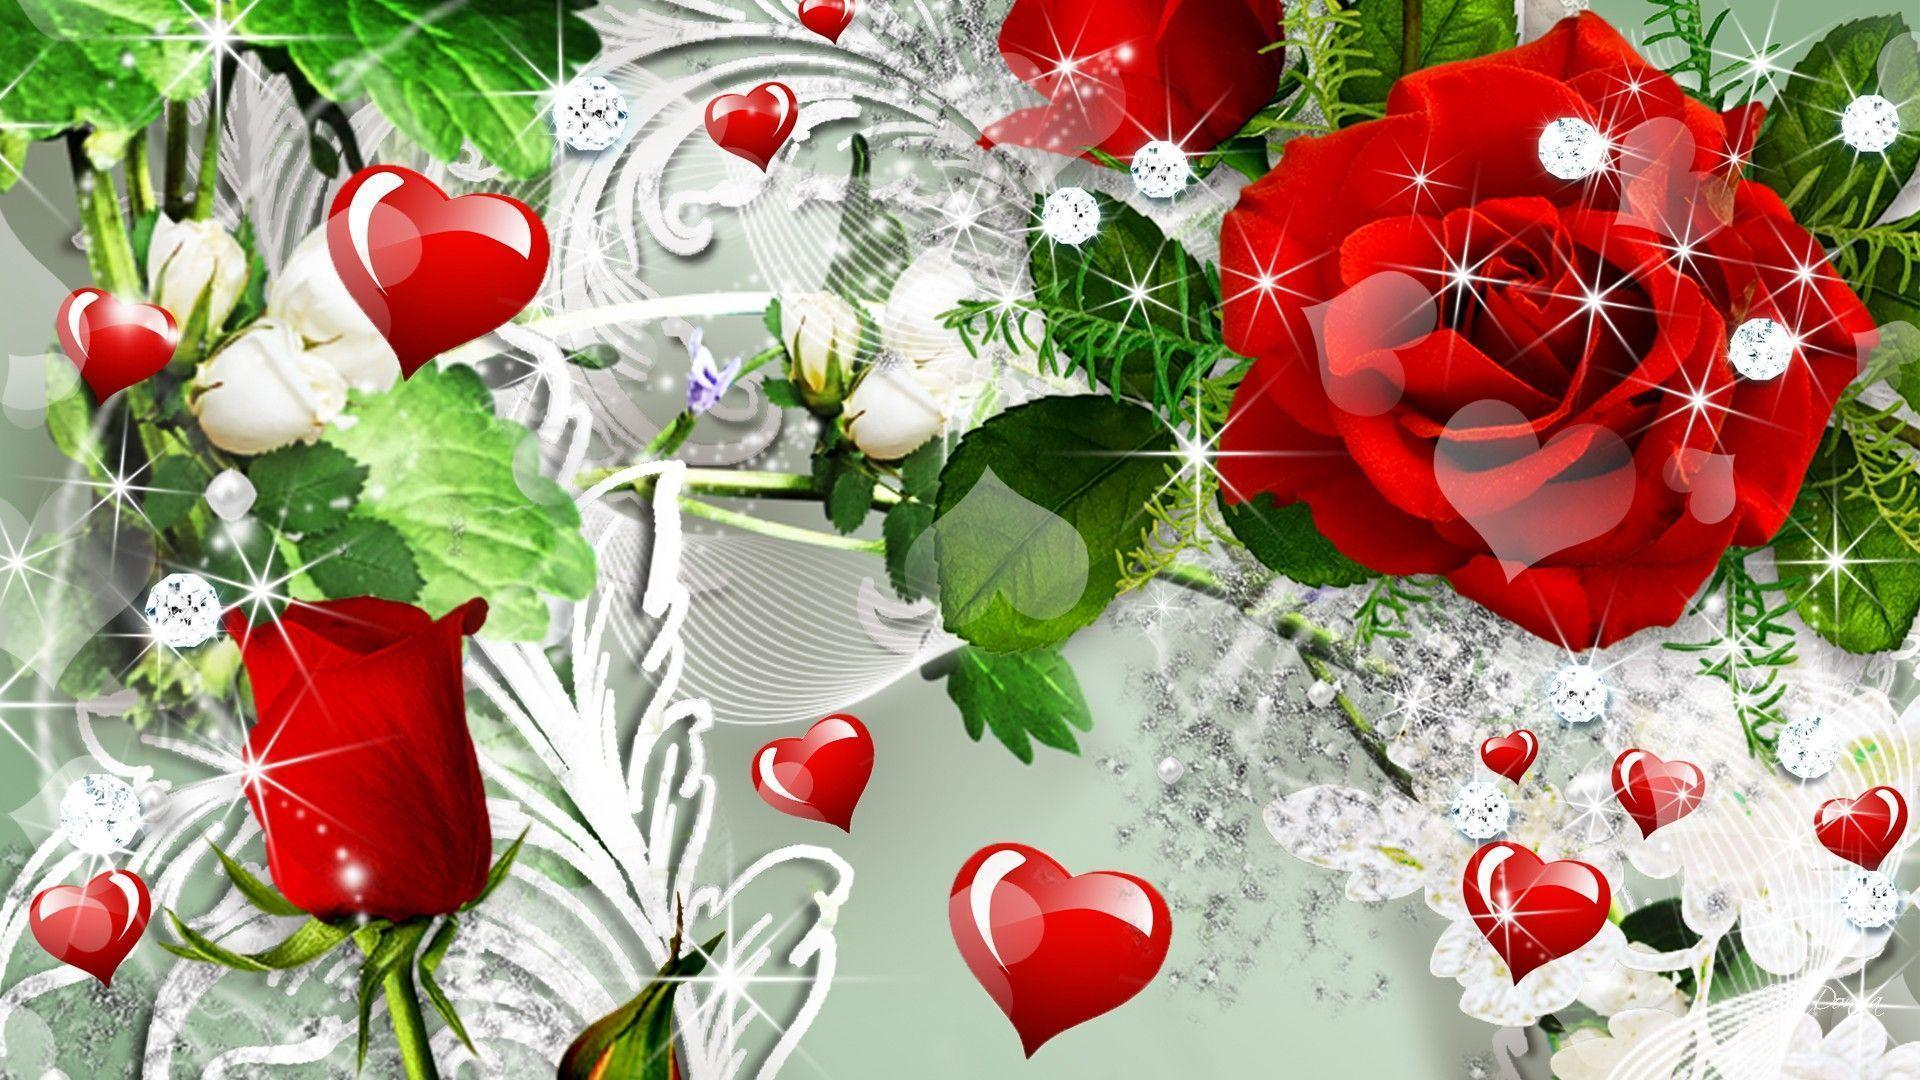 Red Roses And Hearts Wallpapers - Wallpaper Cave